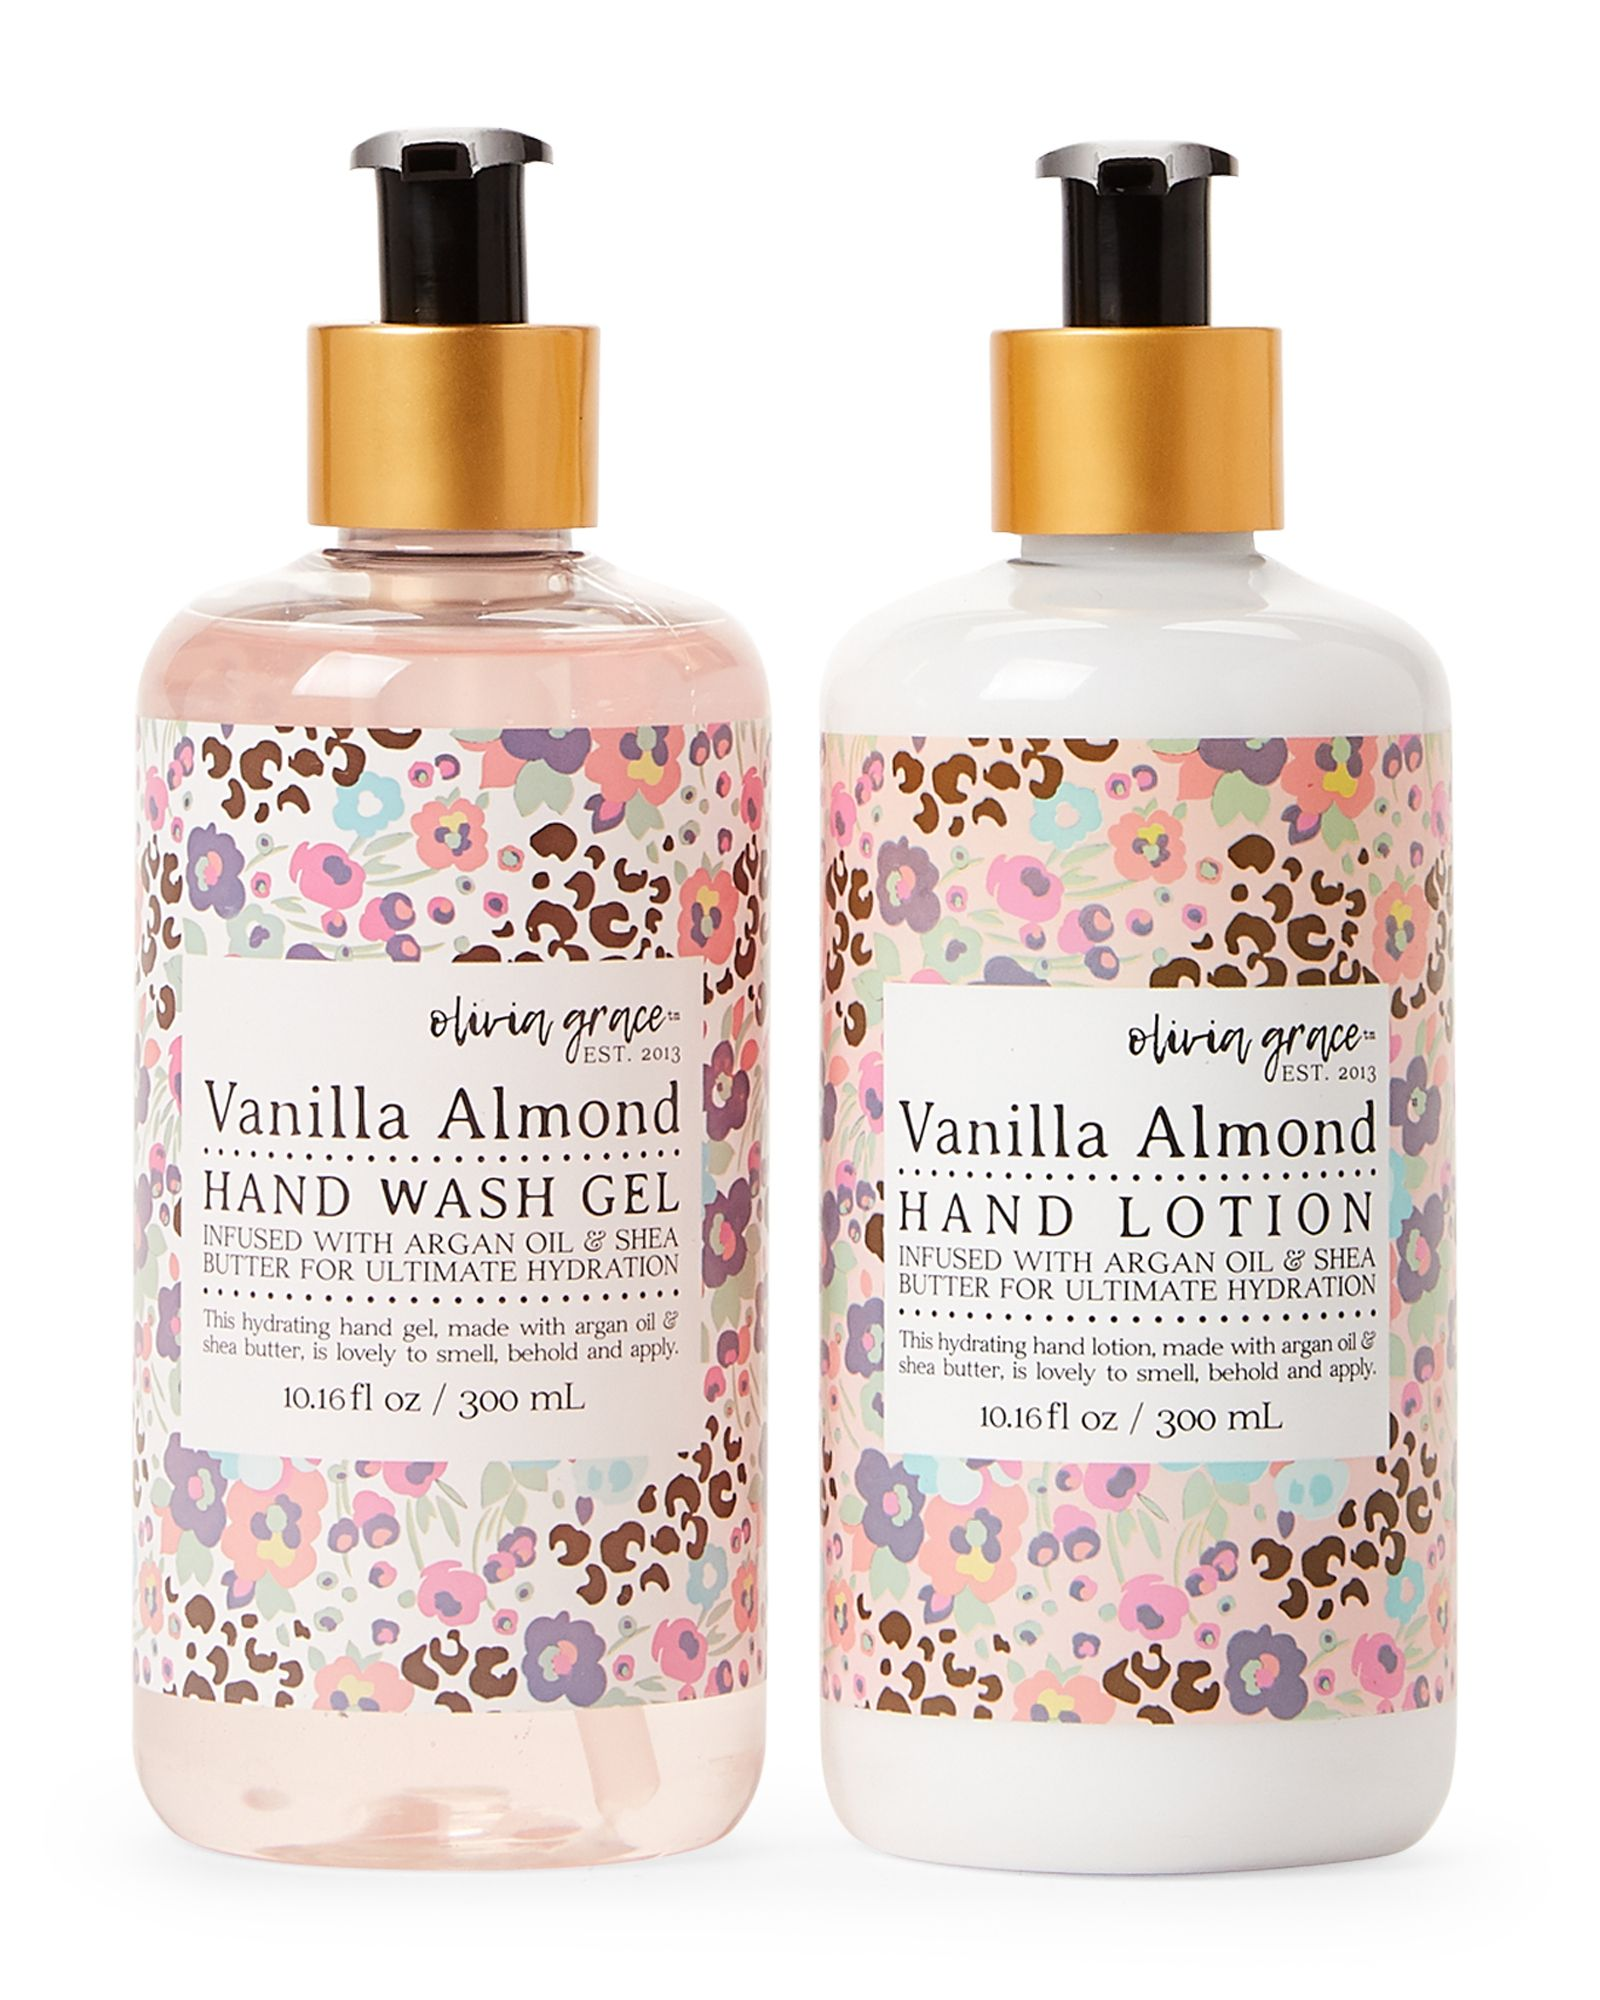 Olivia Grace hand cream collection